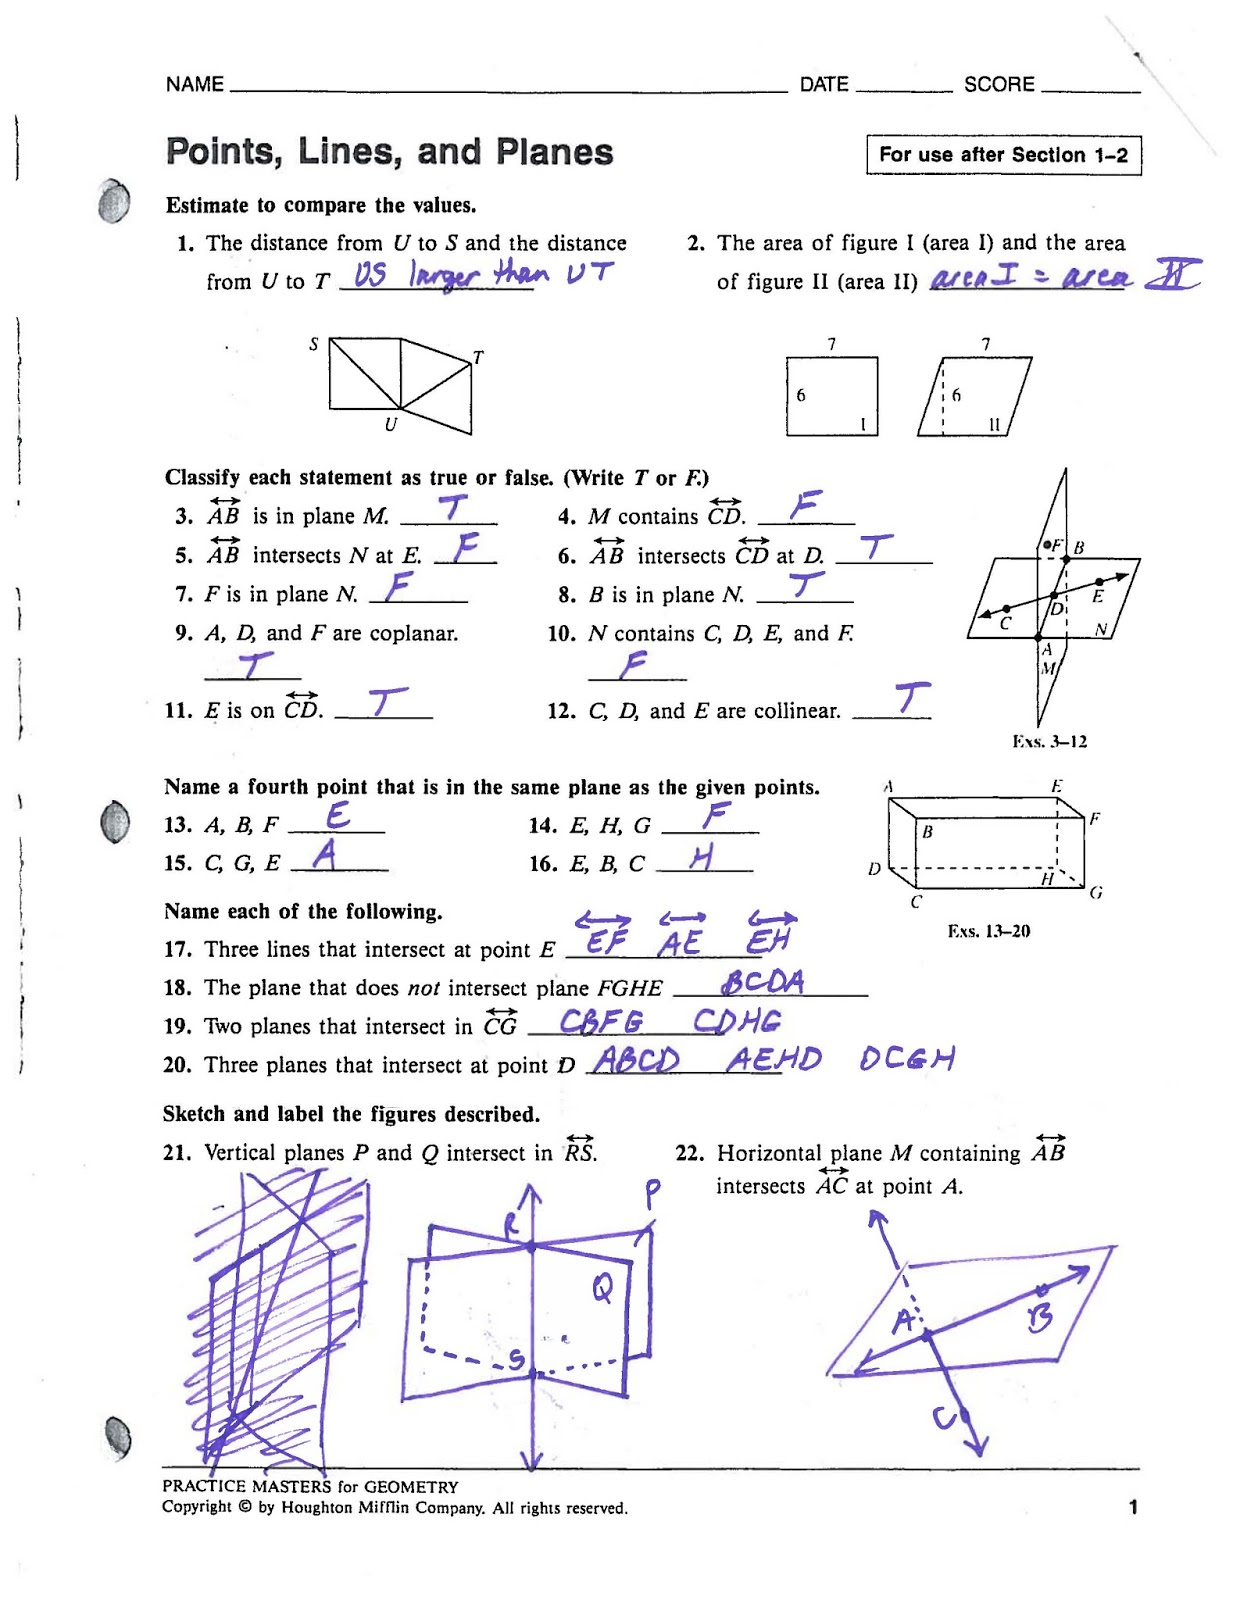 Mr Landers Math Classes Hhs Honors Geometry 9 6